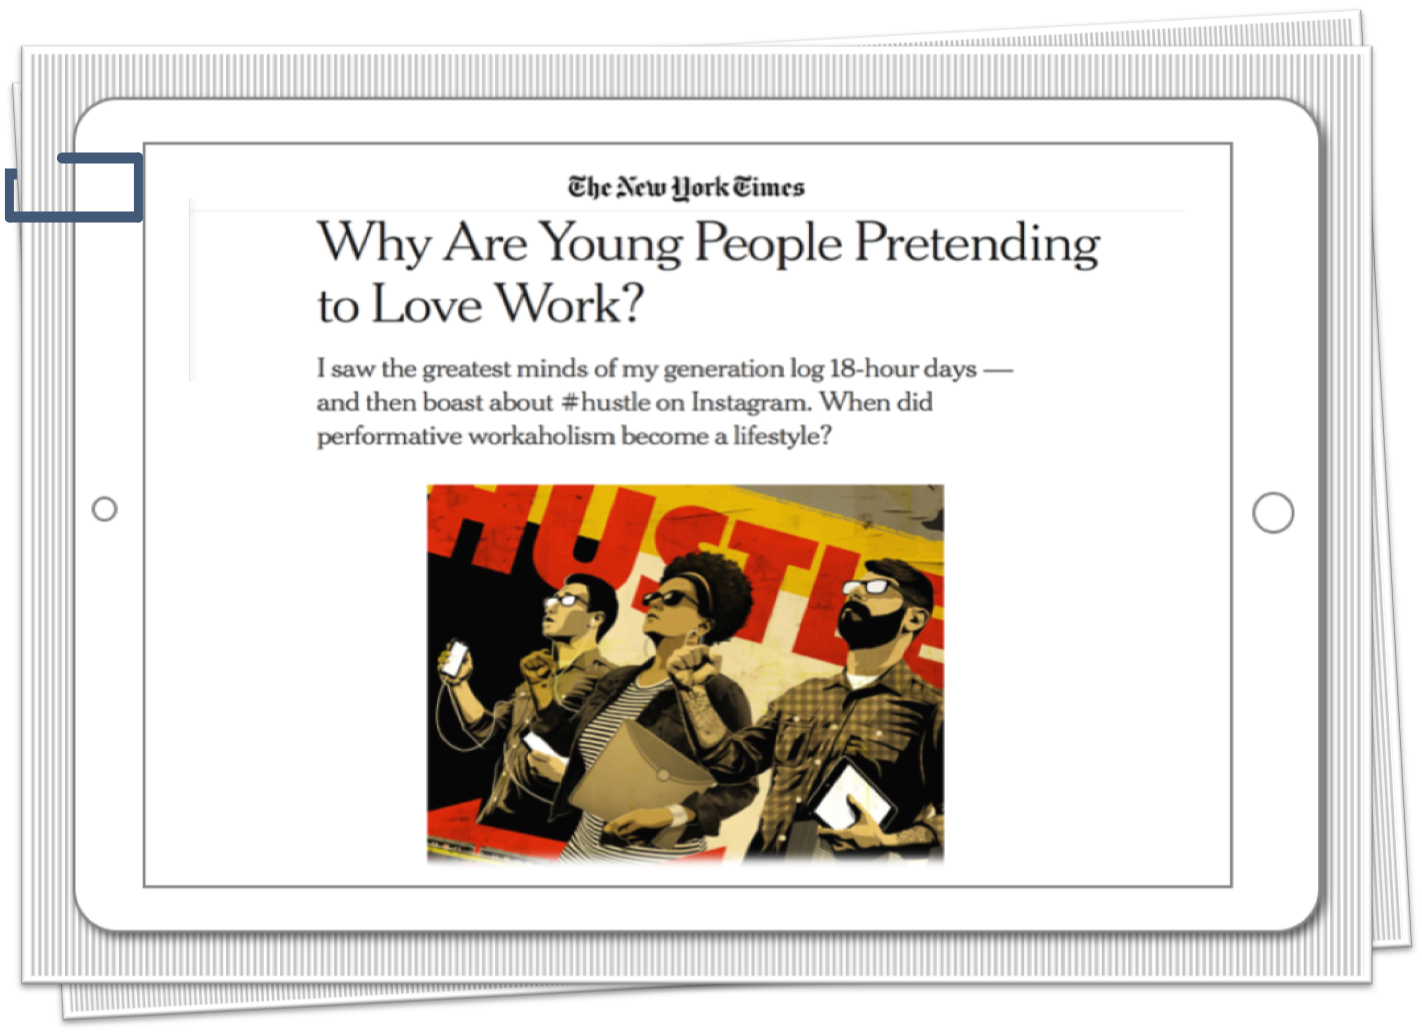 AssistenteDallaAallaZeta Parole Chiave Assistente di Direzione Le Parole Del Lavoro Link Sito Erin Griffith Why Are Young People Pretending To Love Work Assistente dalla A alla Zeta